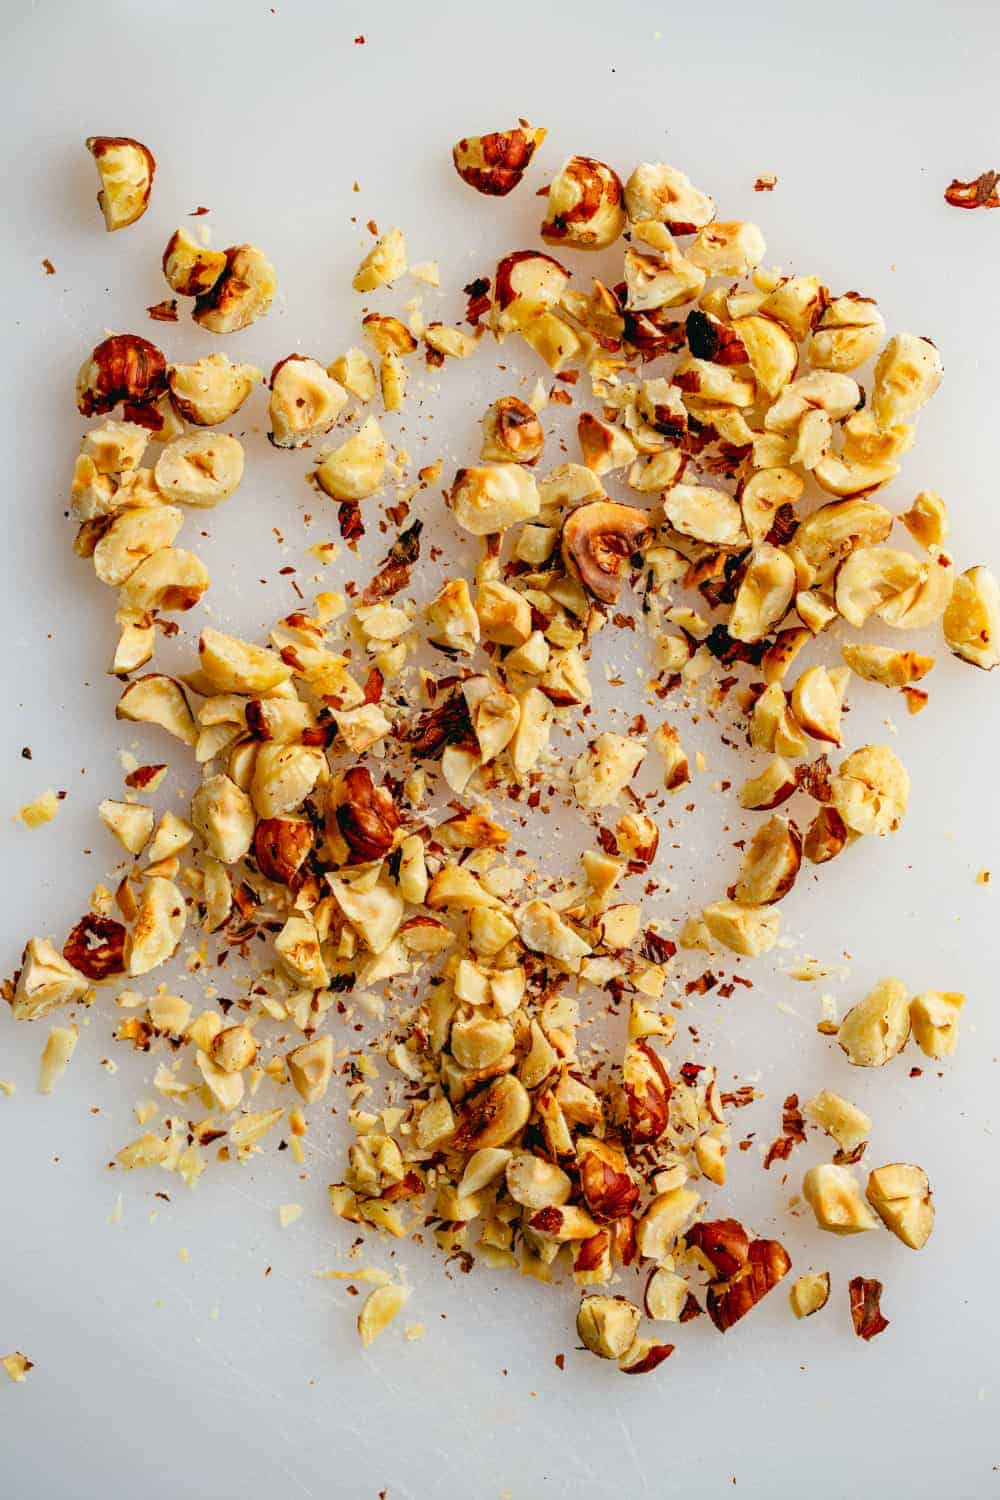 Chopped toasted hazelnuts on a white surface